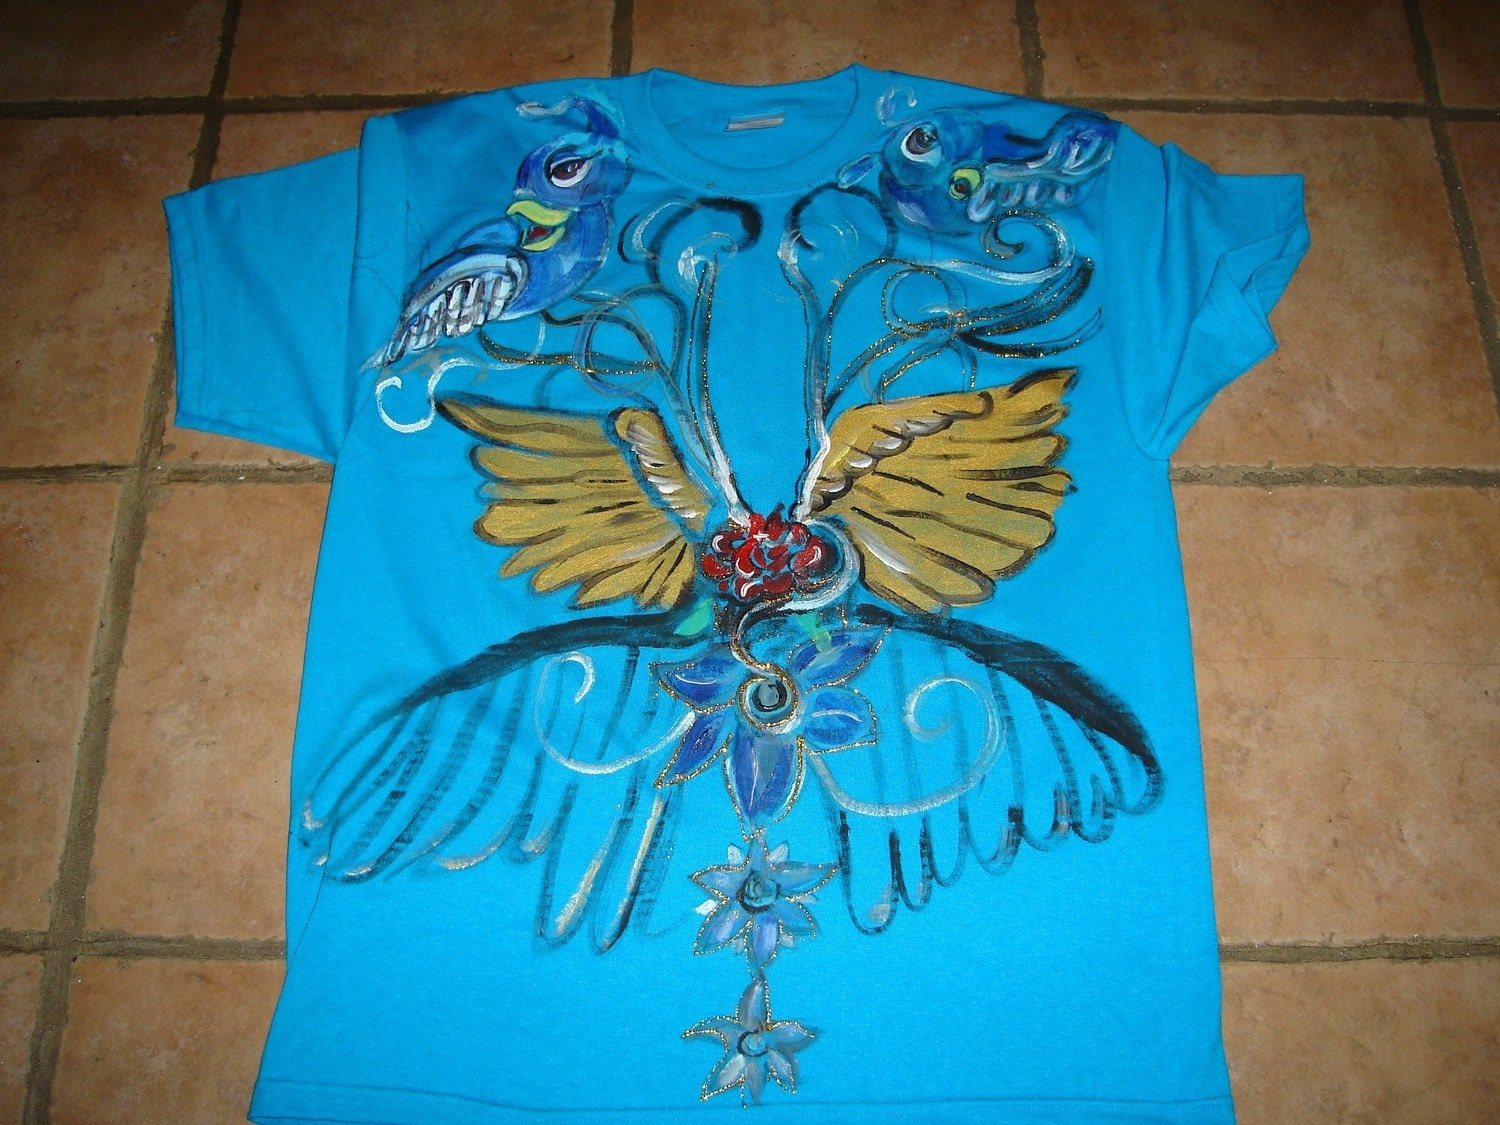 Handpainted wings of angels. From handdesigns